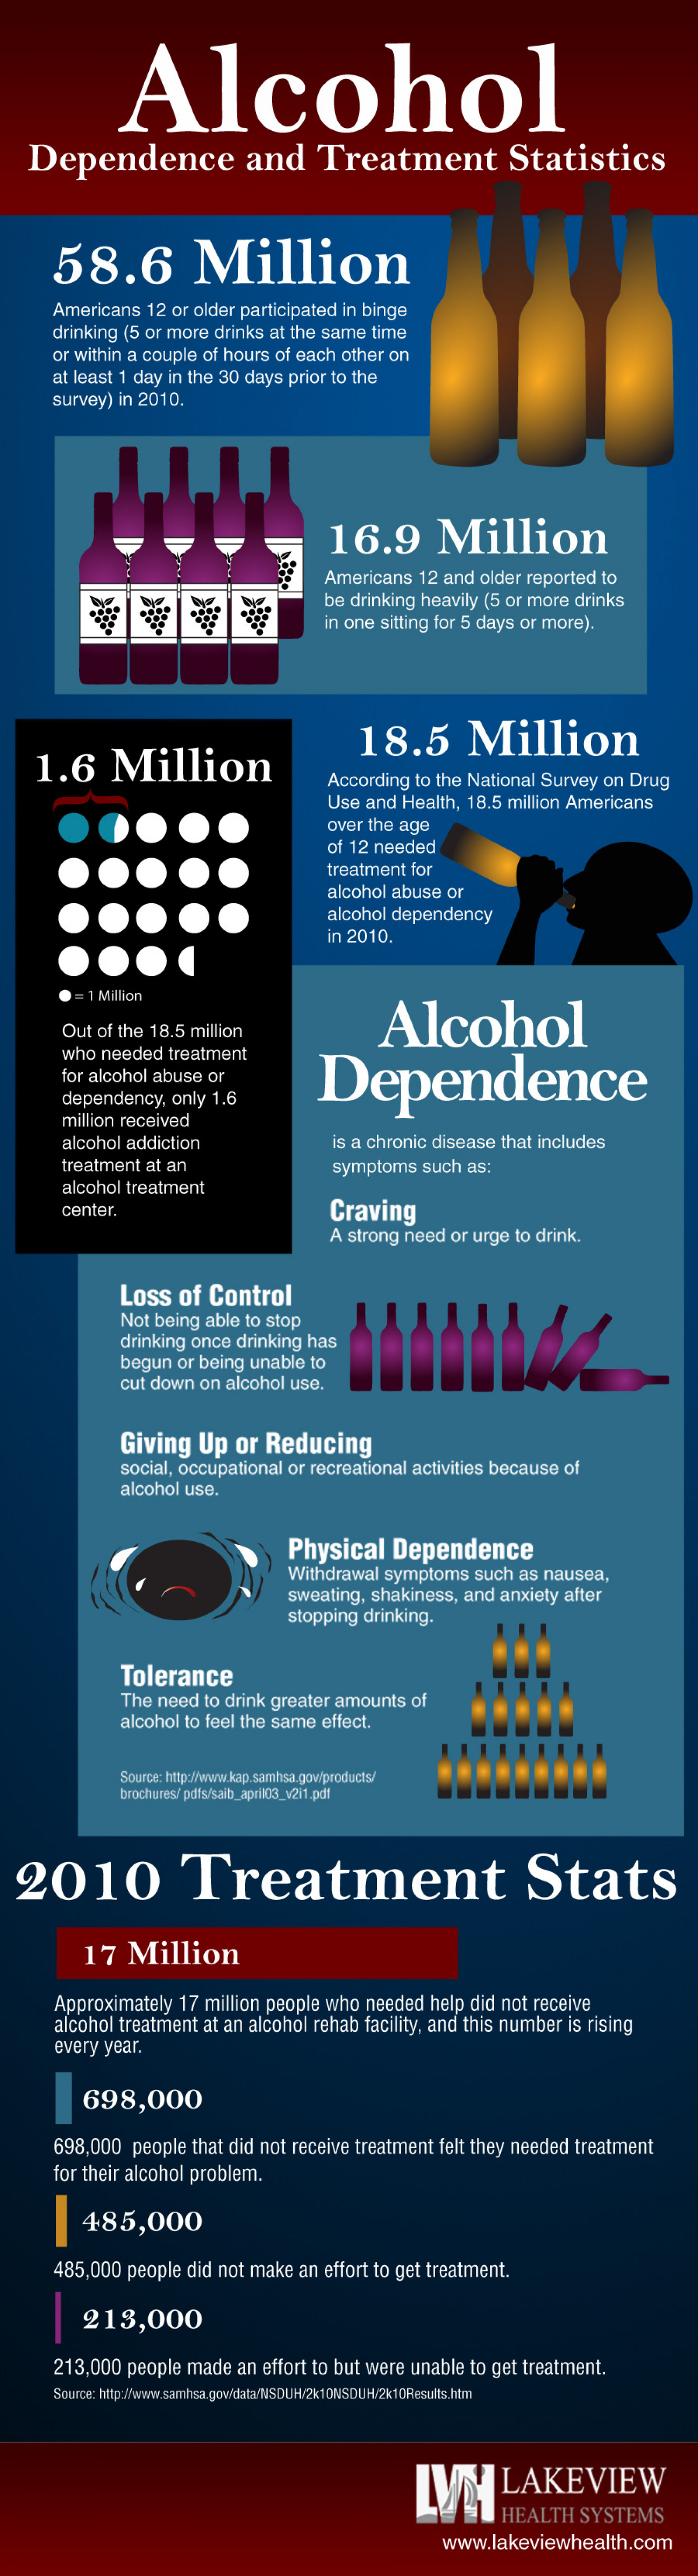 Alcohol Dependence and Treatment Statistics Infographic